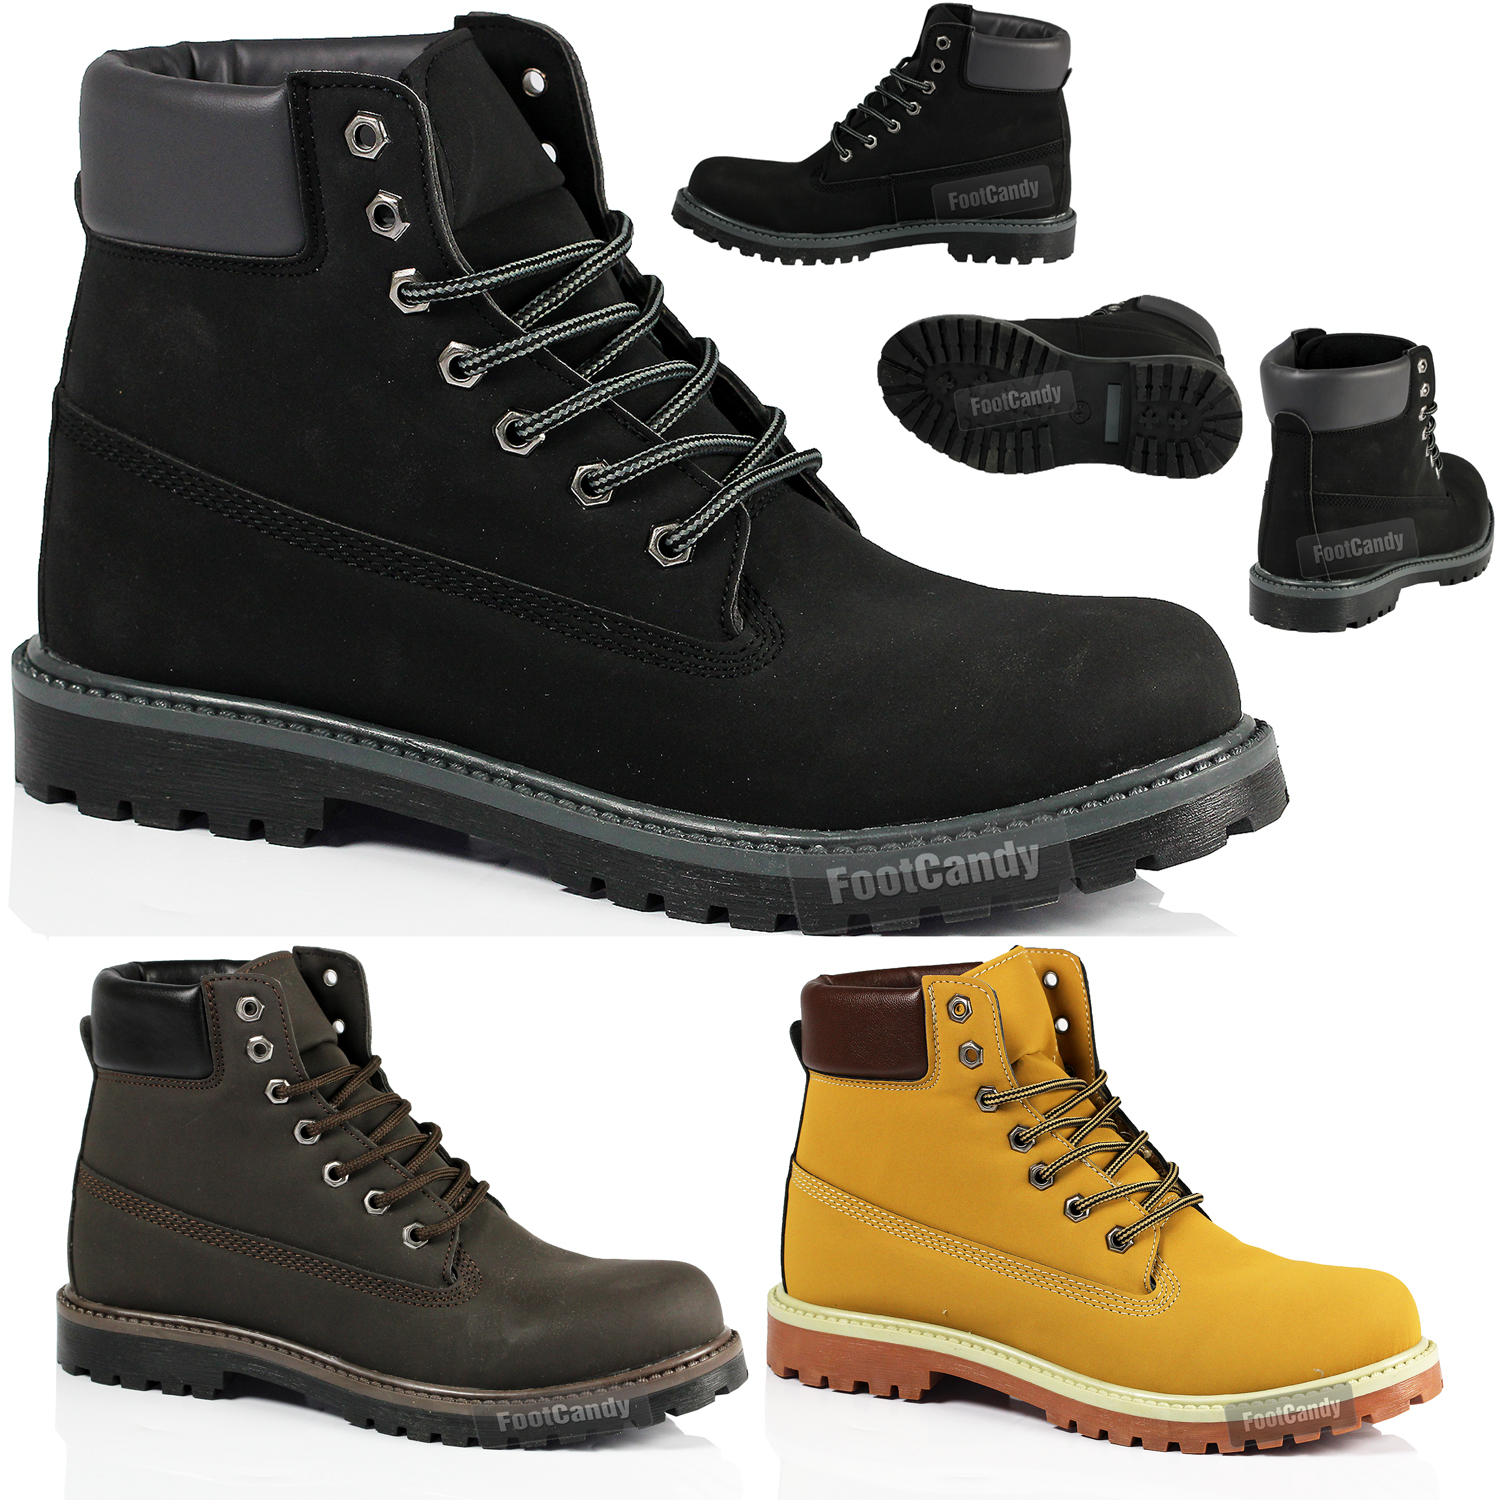 Winter Work Boots For Men gf2zy6Pm